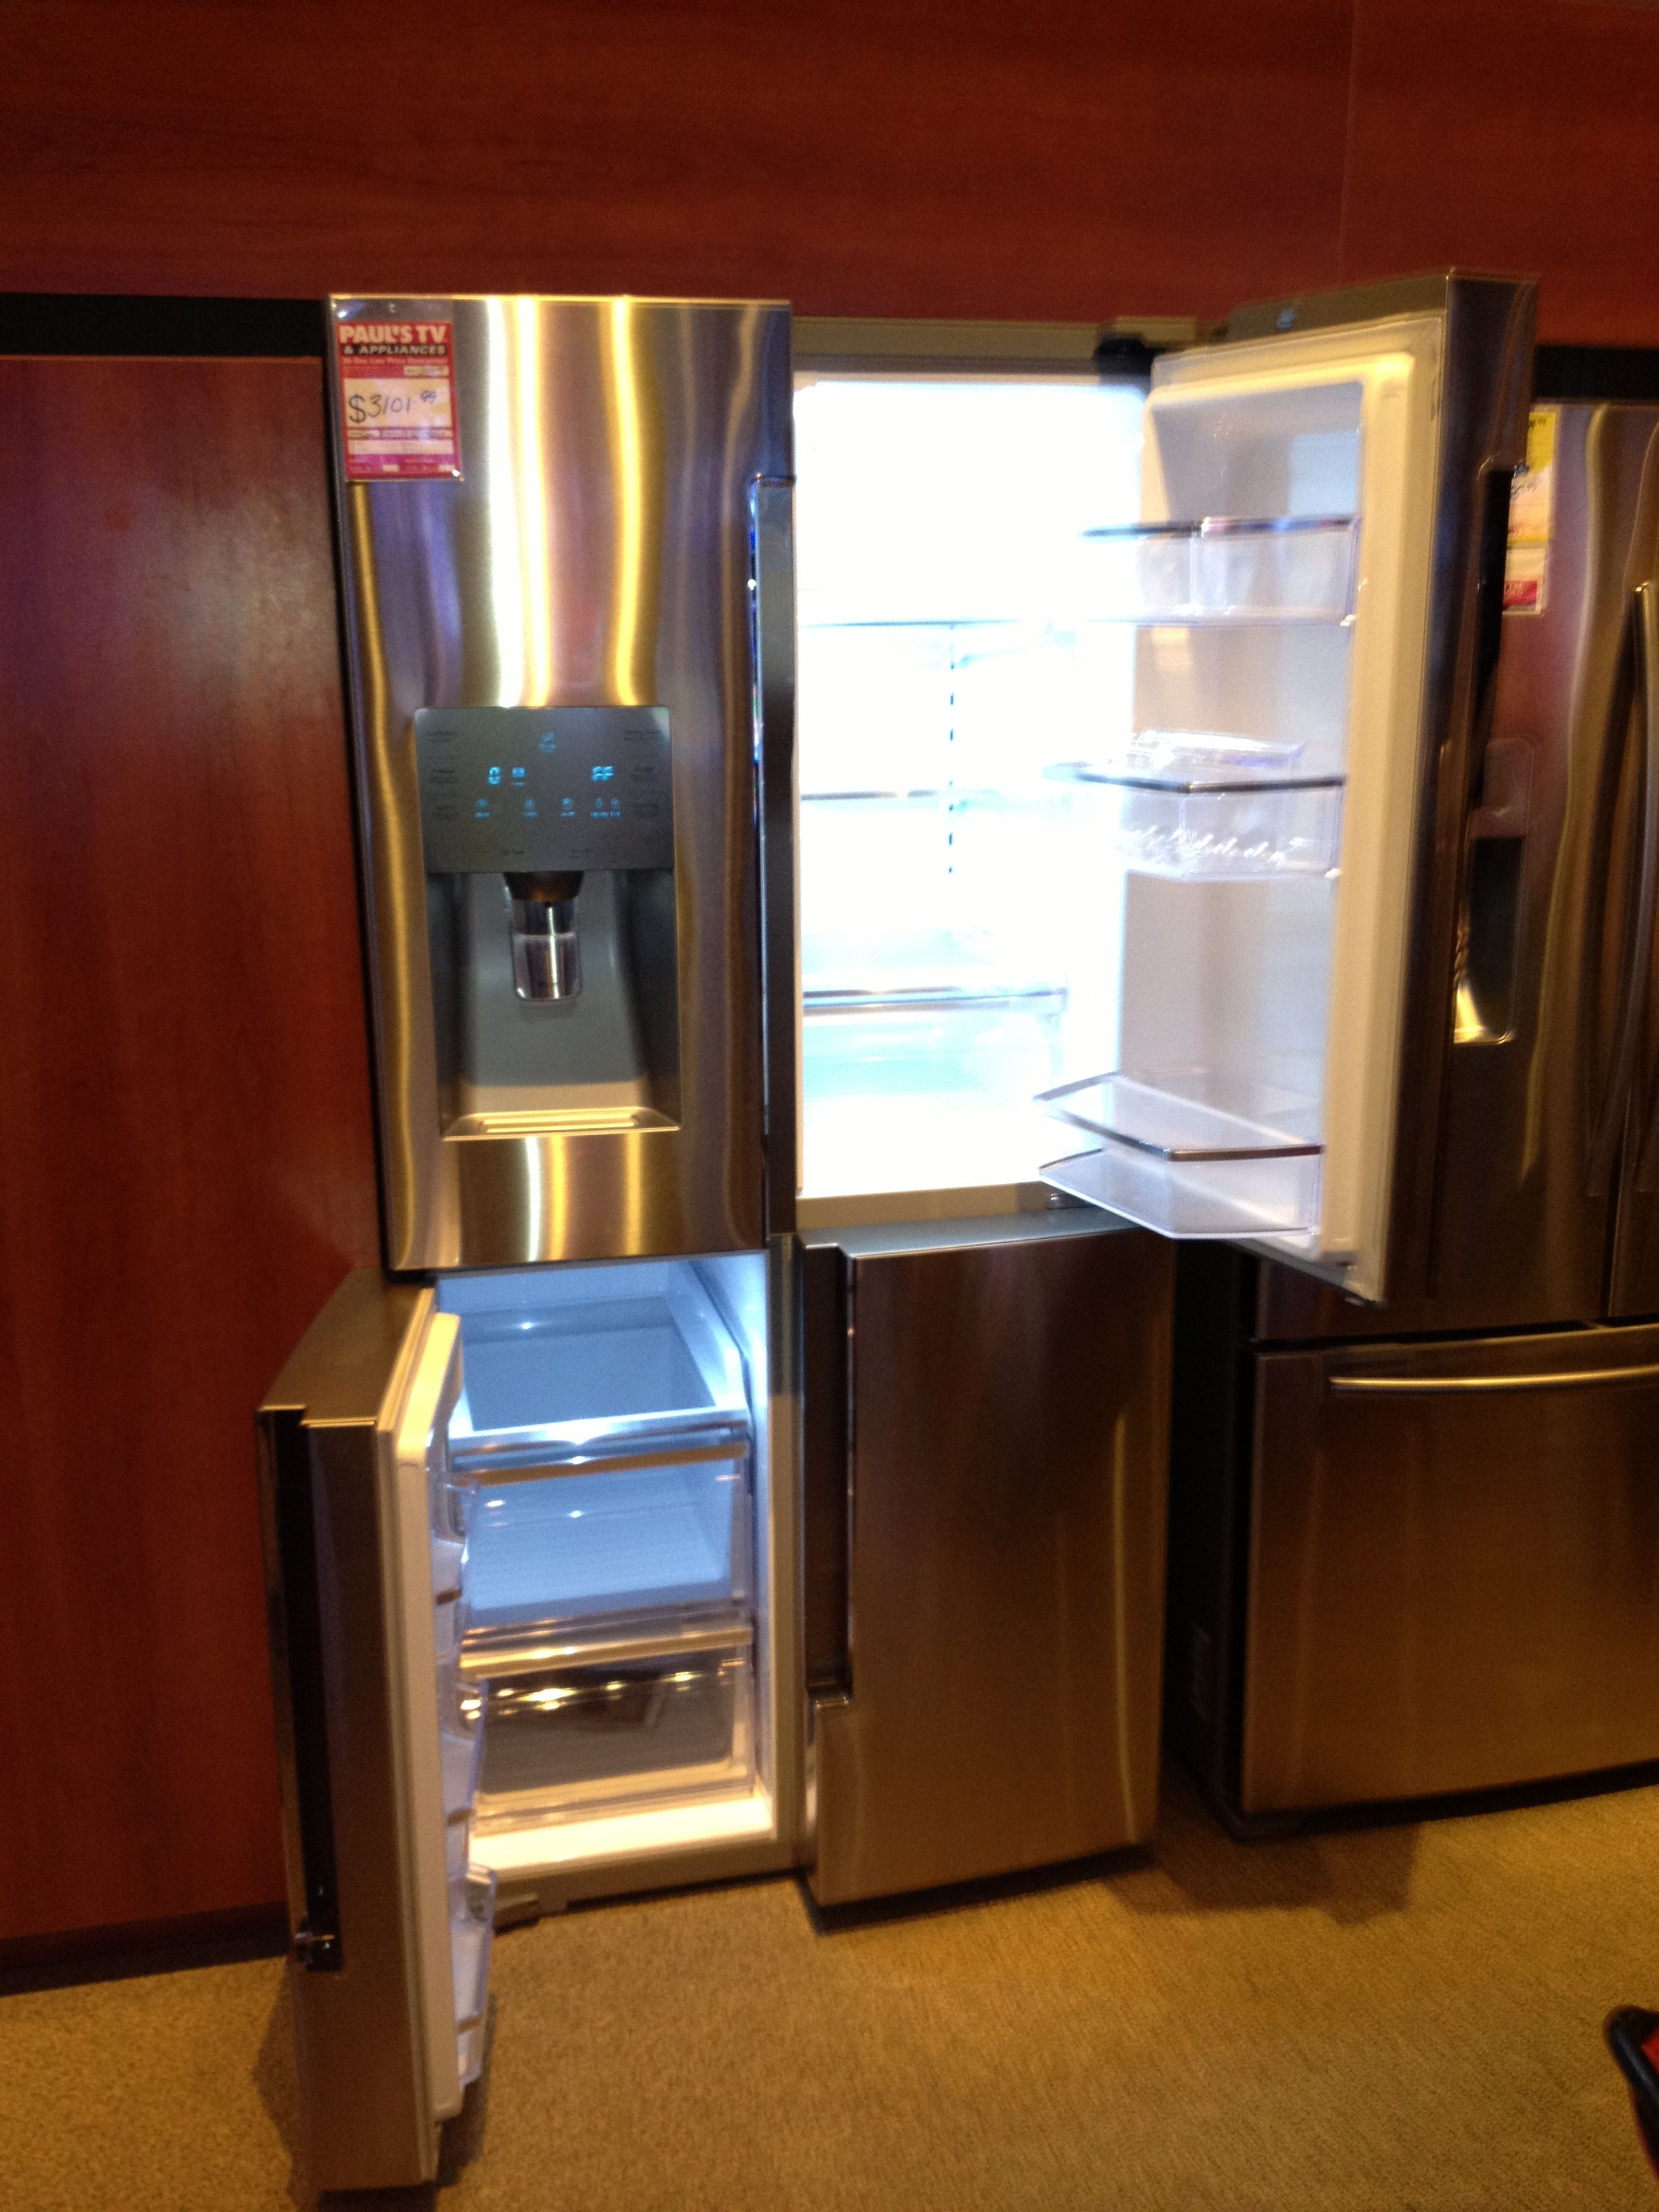 Double refrigerator and freezer 3101.99 Samsung Jordan